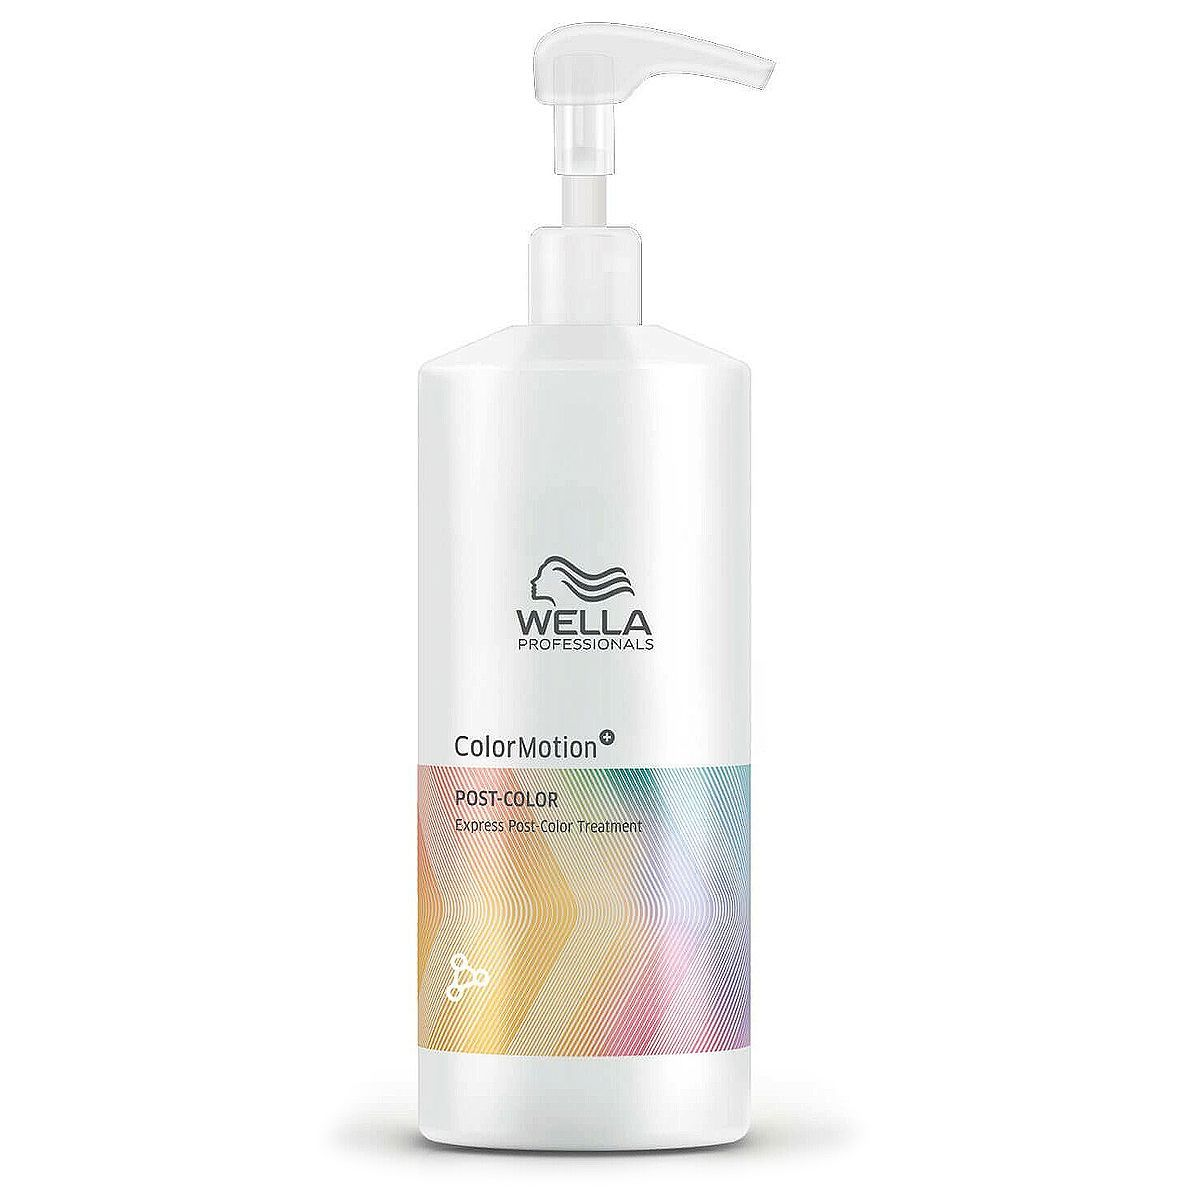 wella-care-color-motion-post-color-500ml